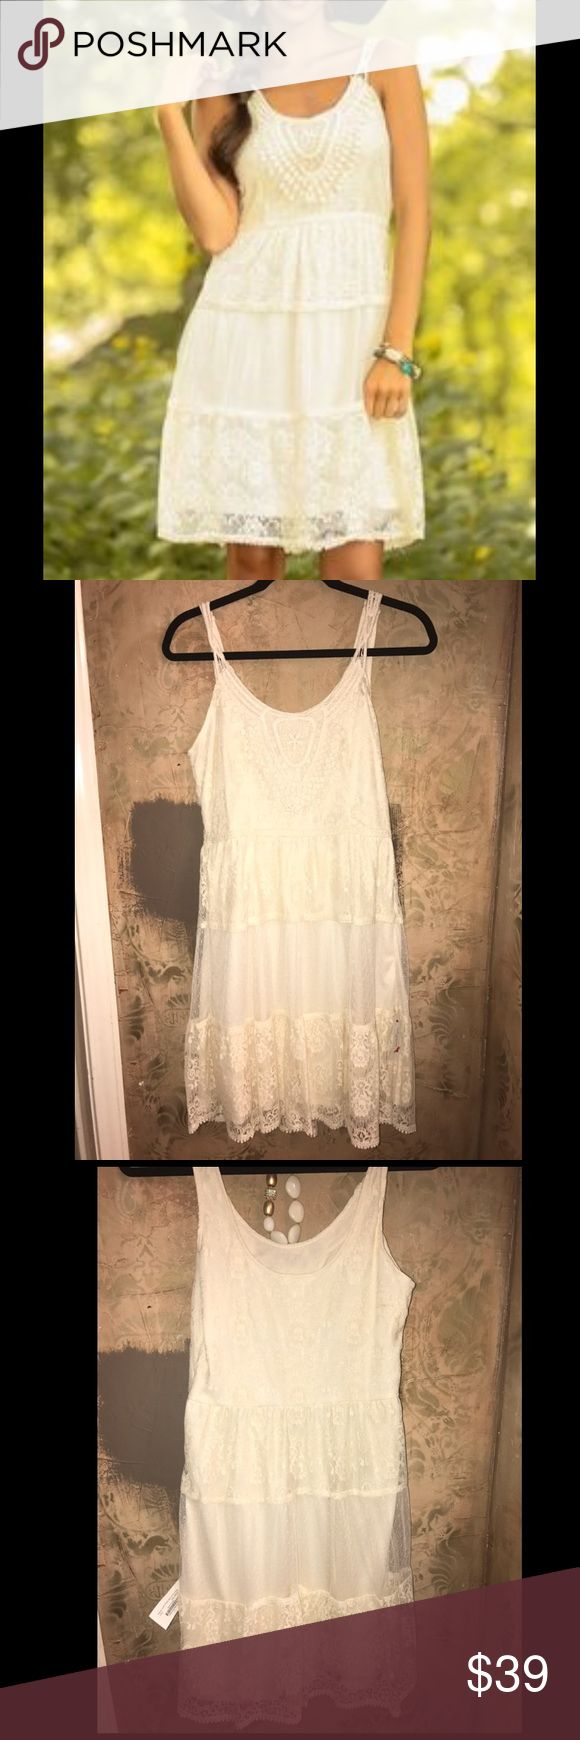 NWT - Lace Dress from Red Dress Boutique Size Medium Red Dress Boutique  New with Tags Lined (100% Polyester Liner) Shell: 65% Cotton, 35% Nylon Beautiful Lace Detail Dresses